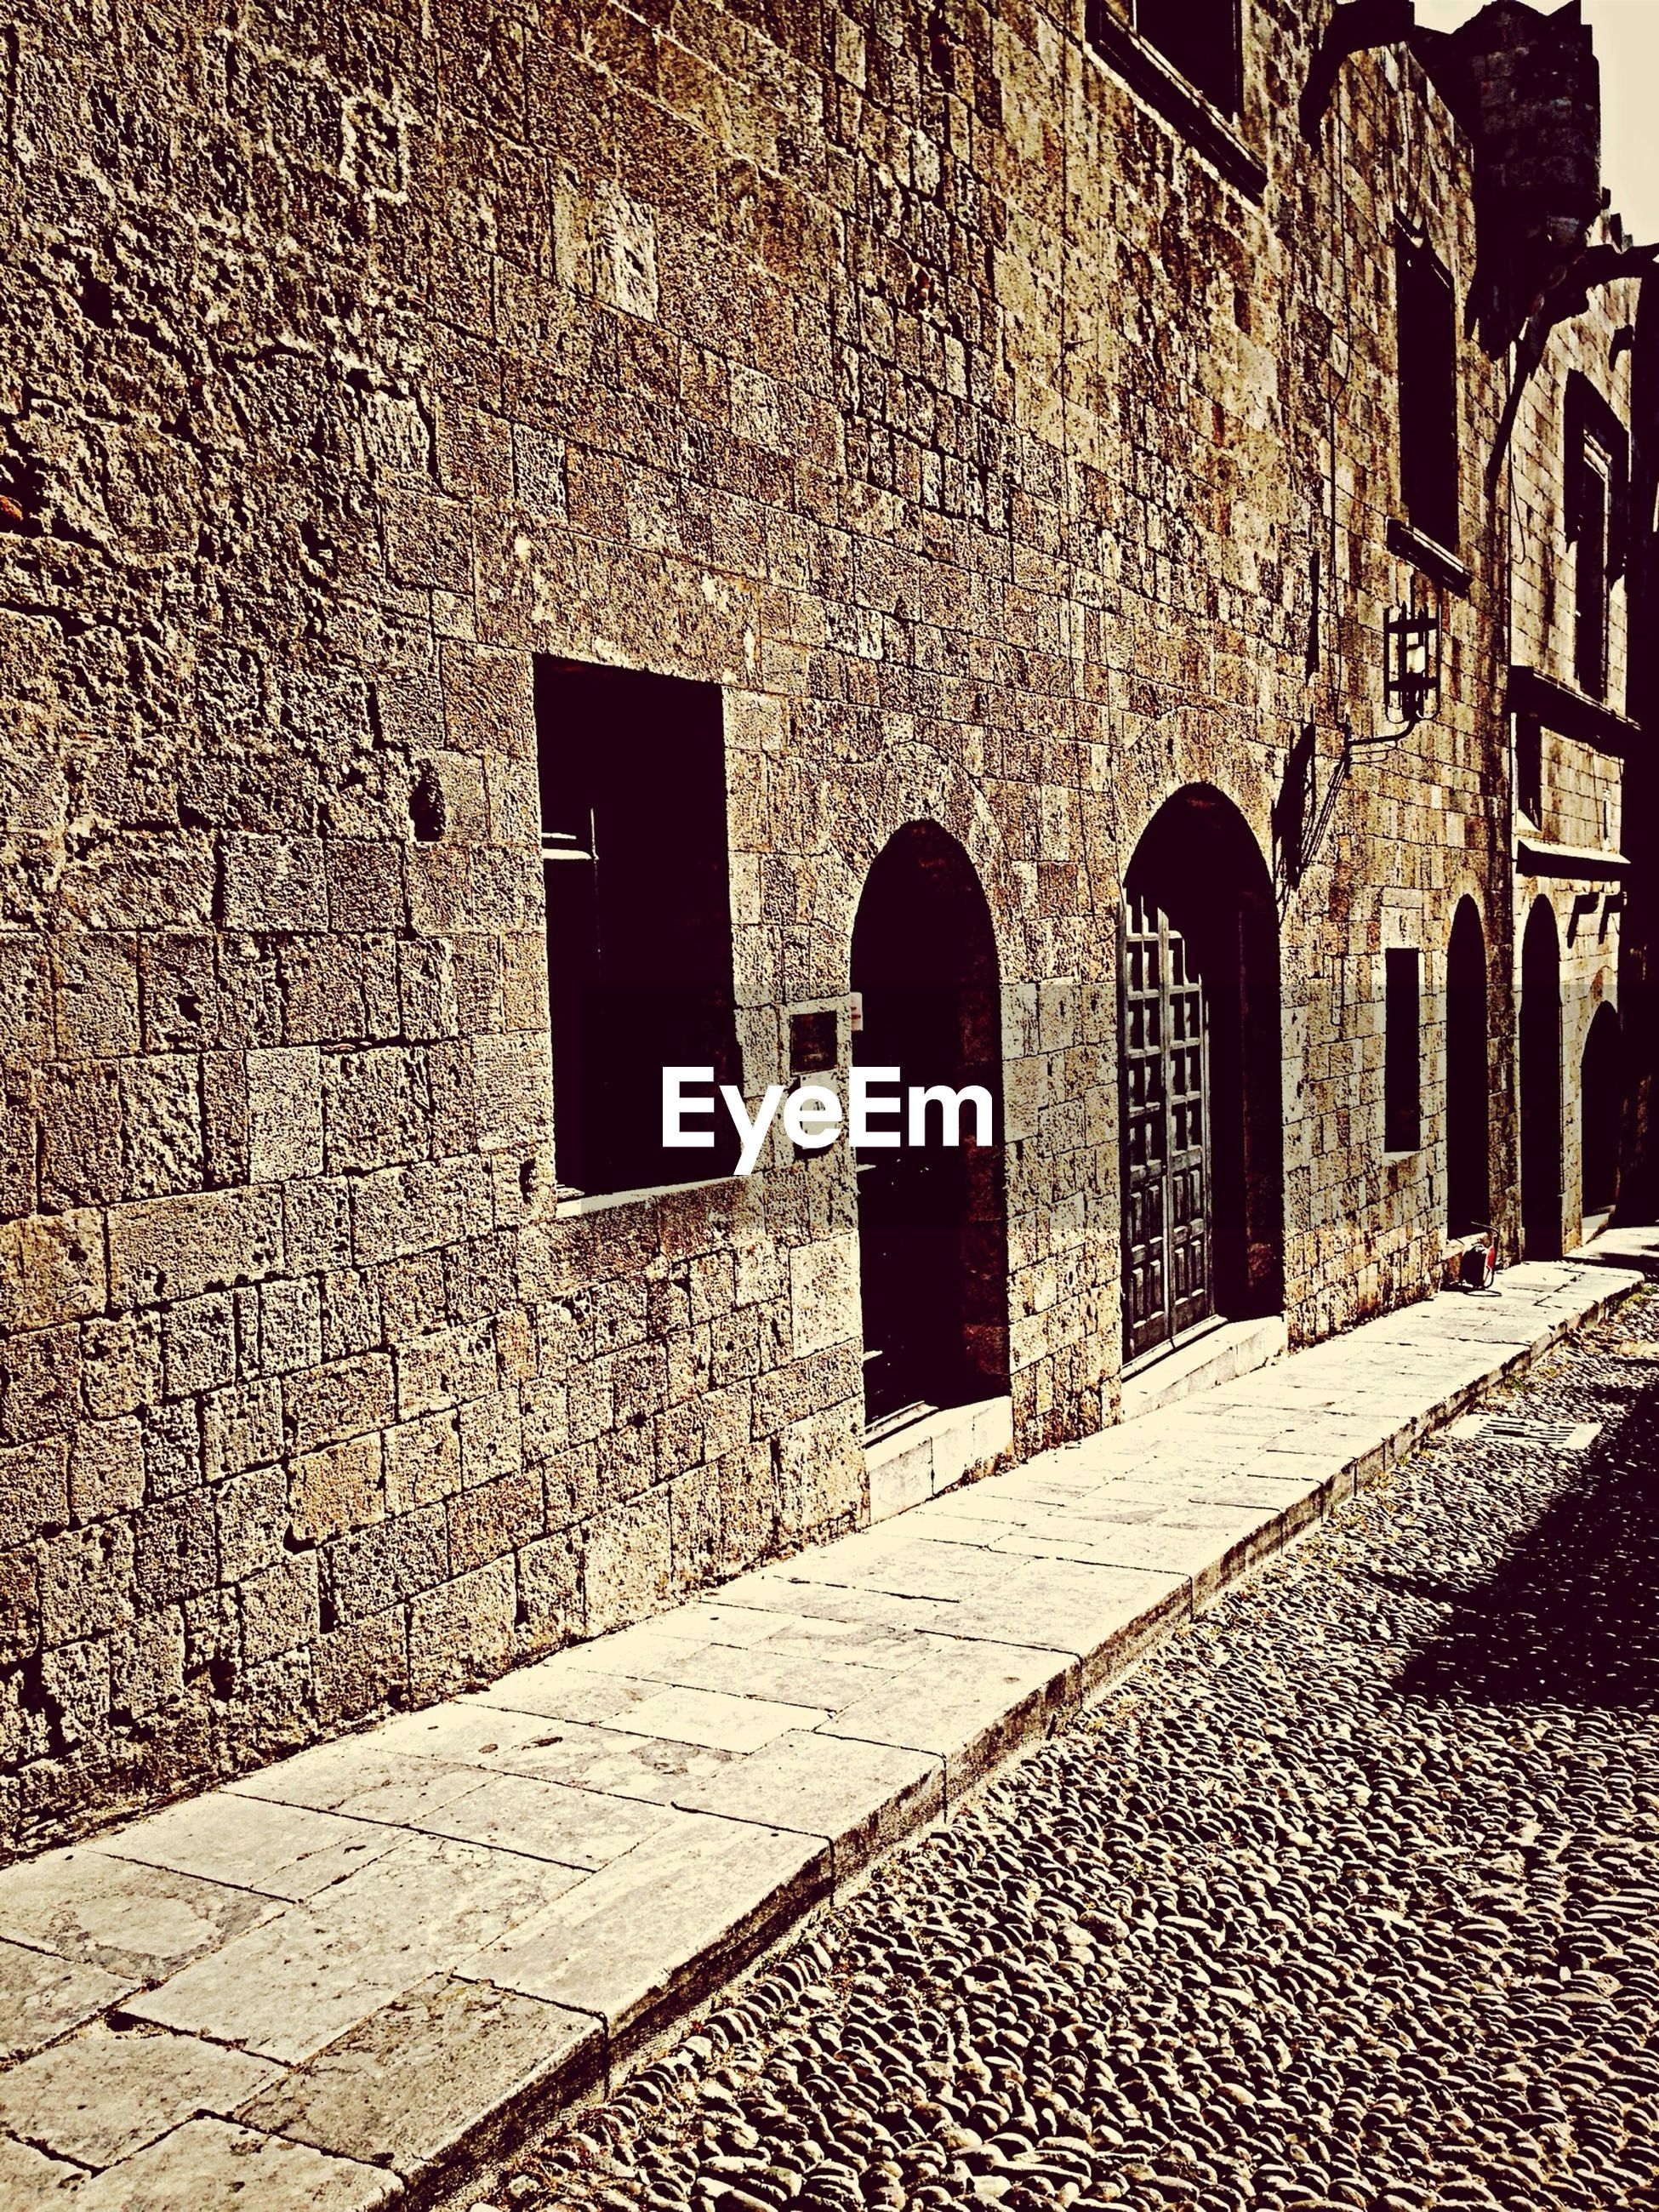 architecture, built structure, building exterior, arch, history, old, stone wall, cobblestone, the past, wall - building feature, brick wall, ancient, historic, building, day, stone material, no people, old ruin, outdoors, wall